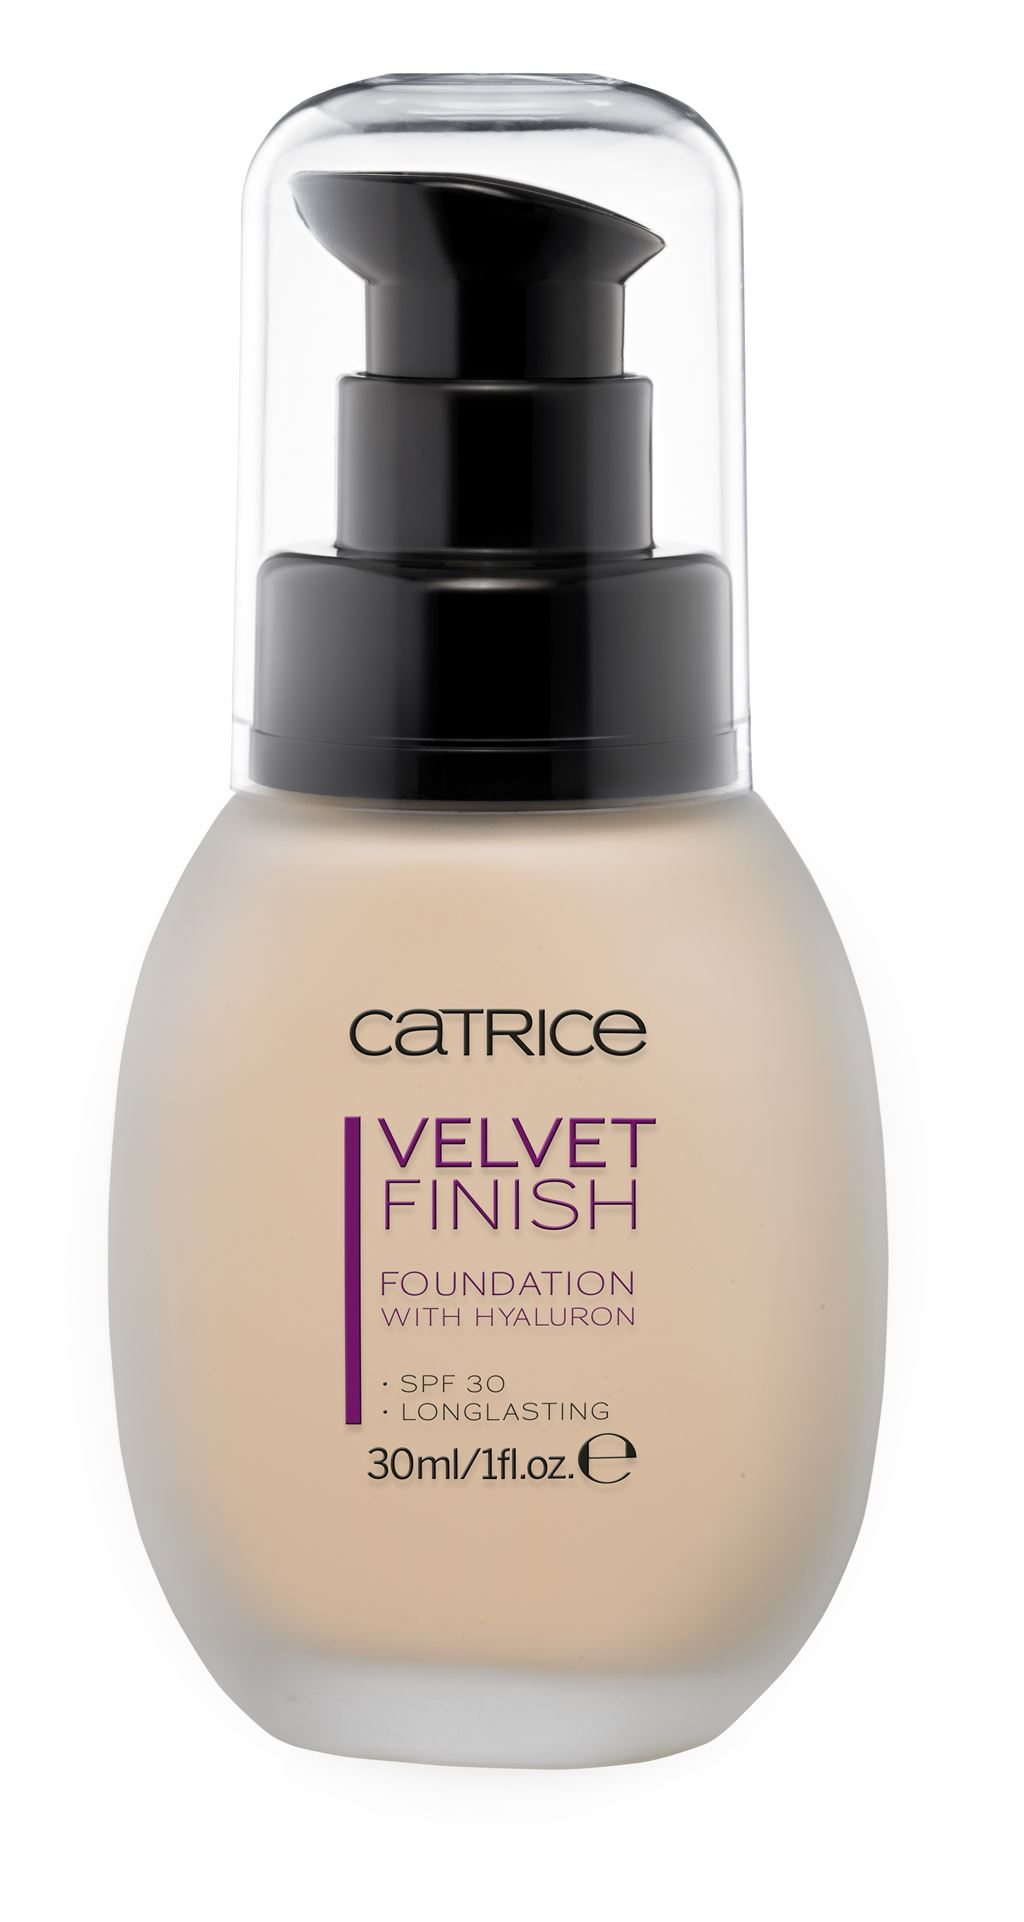 Catr_VelvetFinish_Foundation015